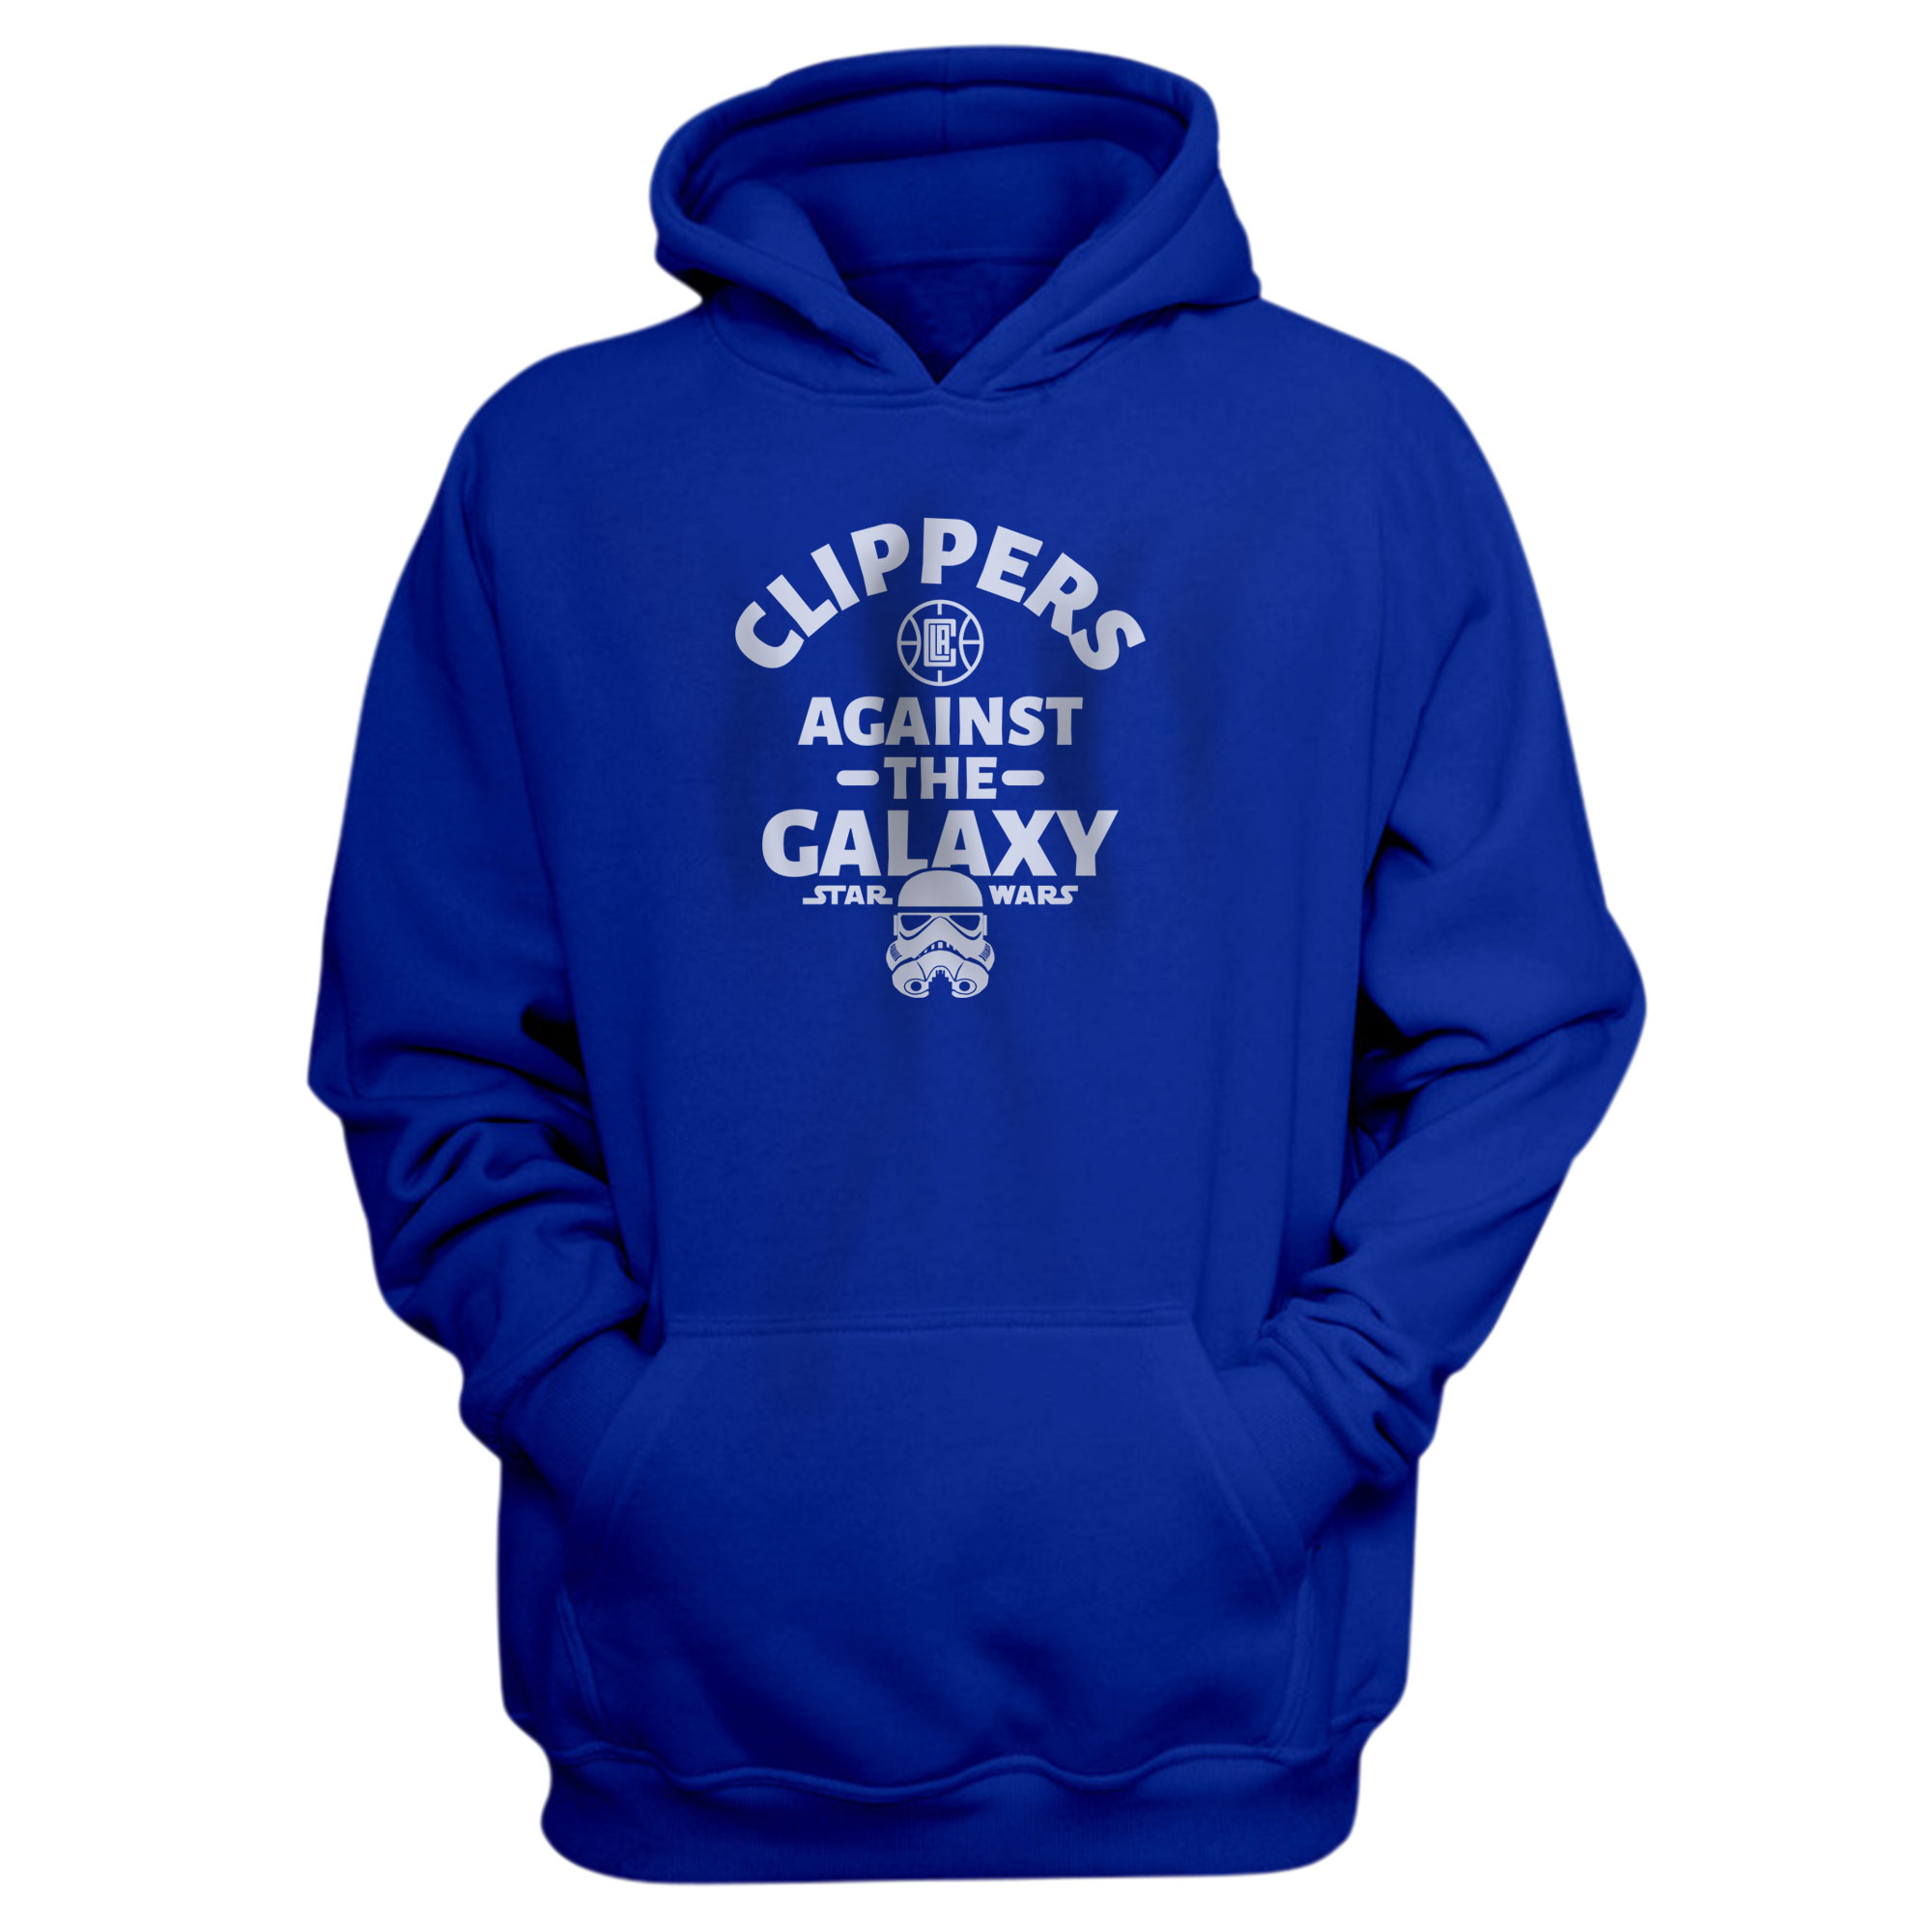 L.A. Clippers Clippers Galaxy Hoodie (HD-RED-425-CLIPPERS-GALAXY)